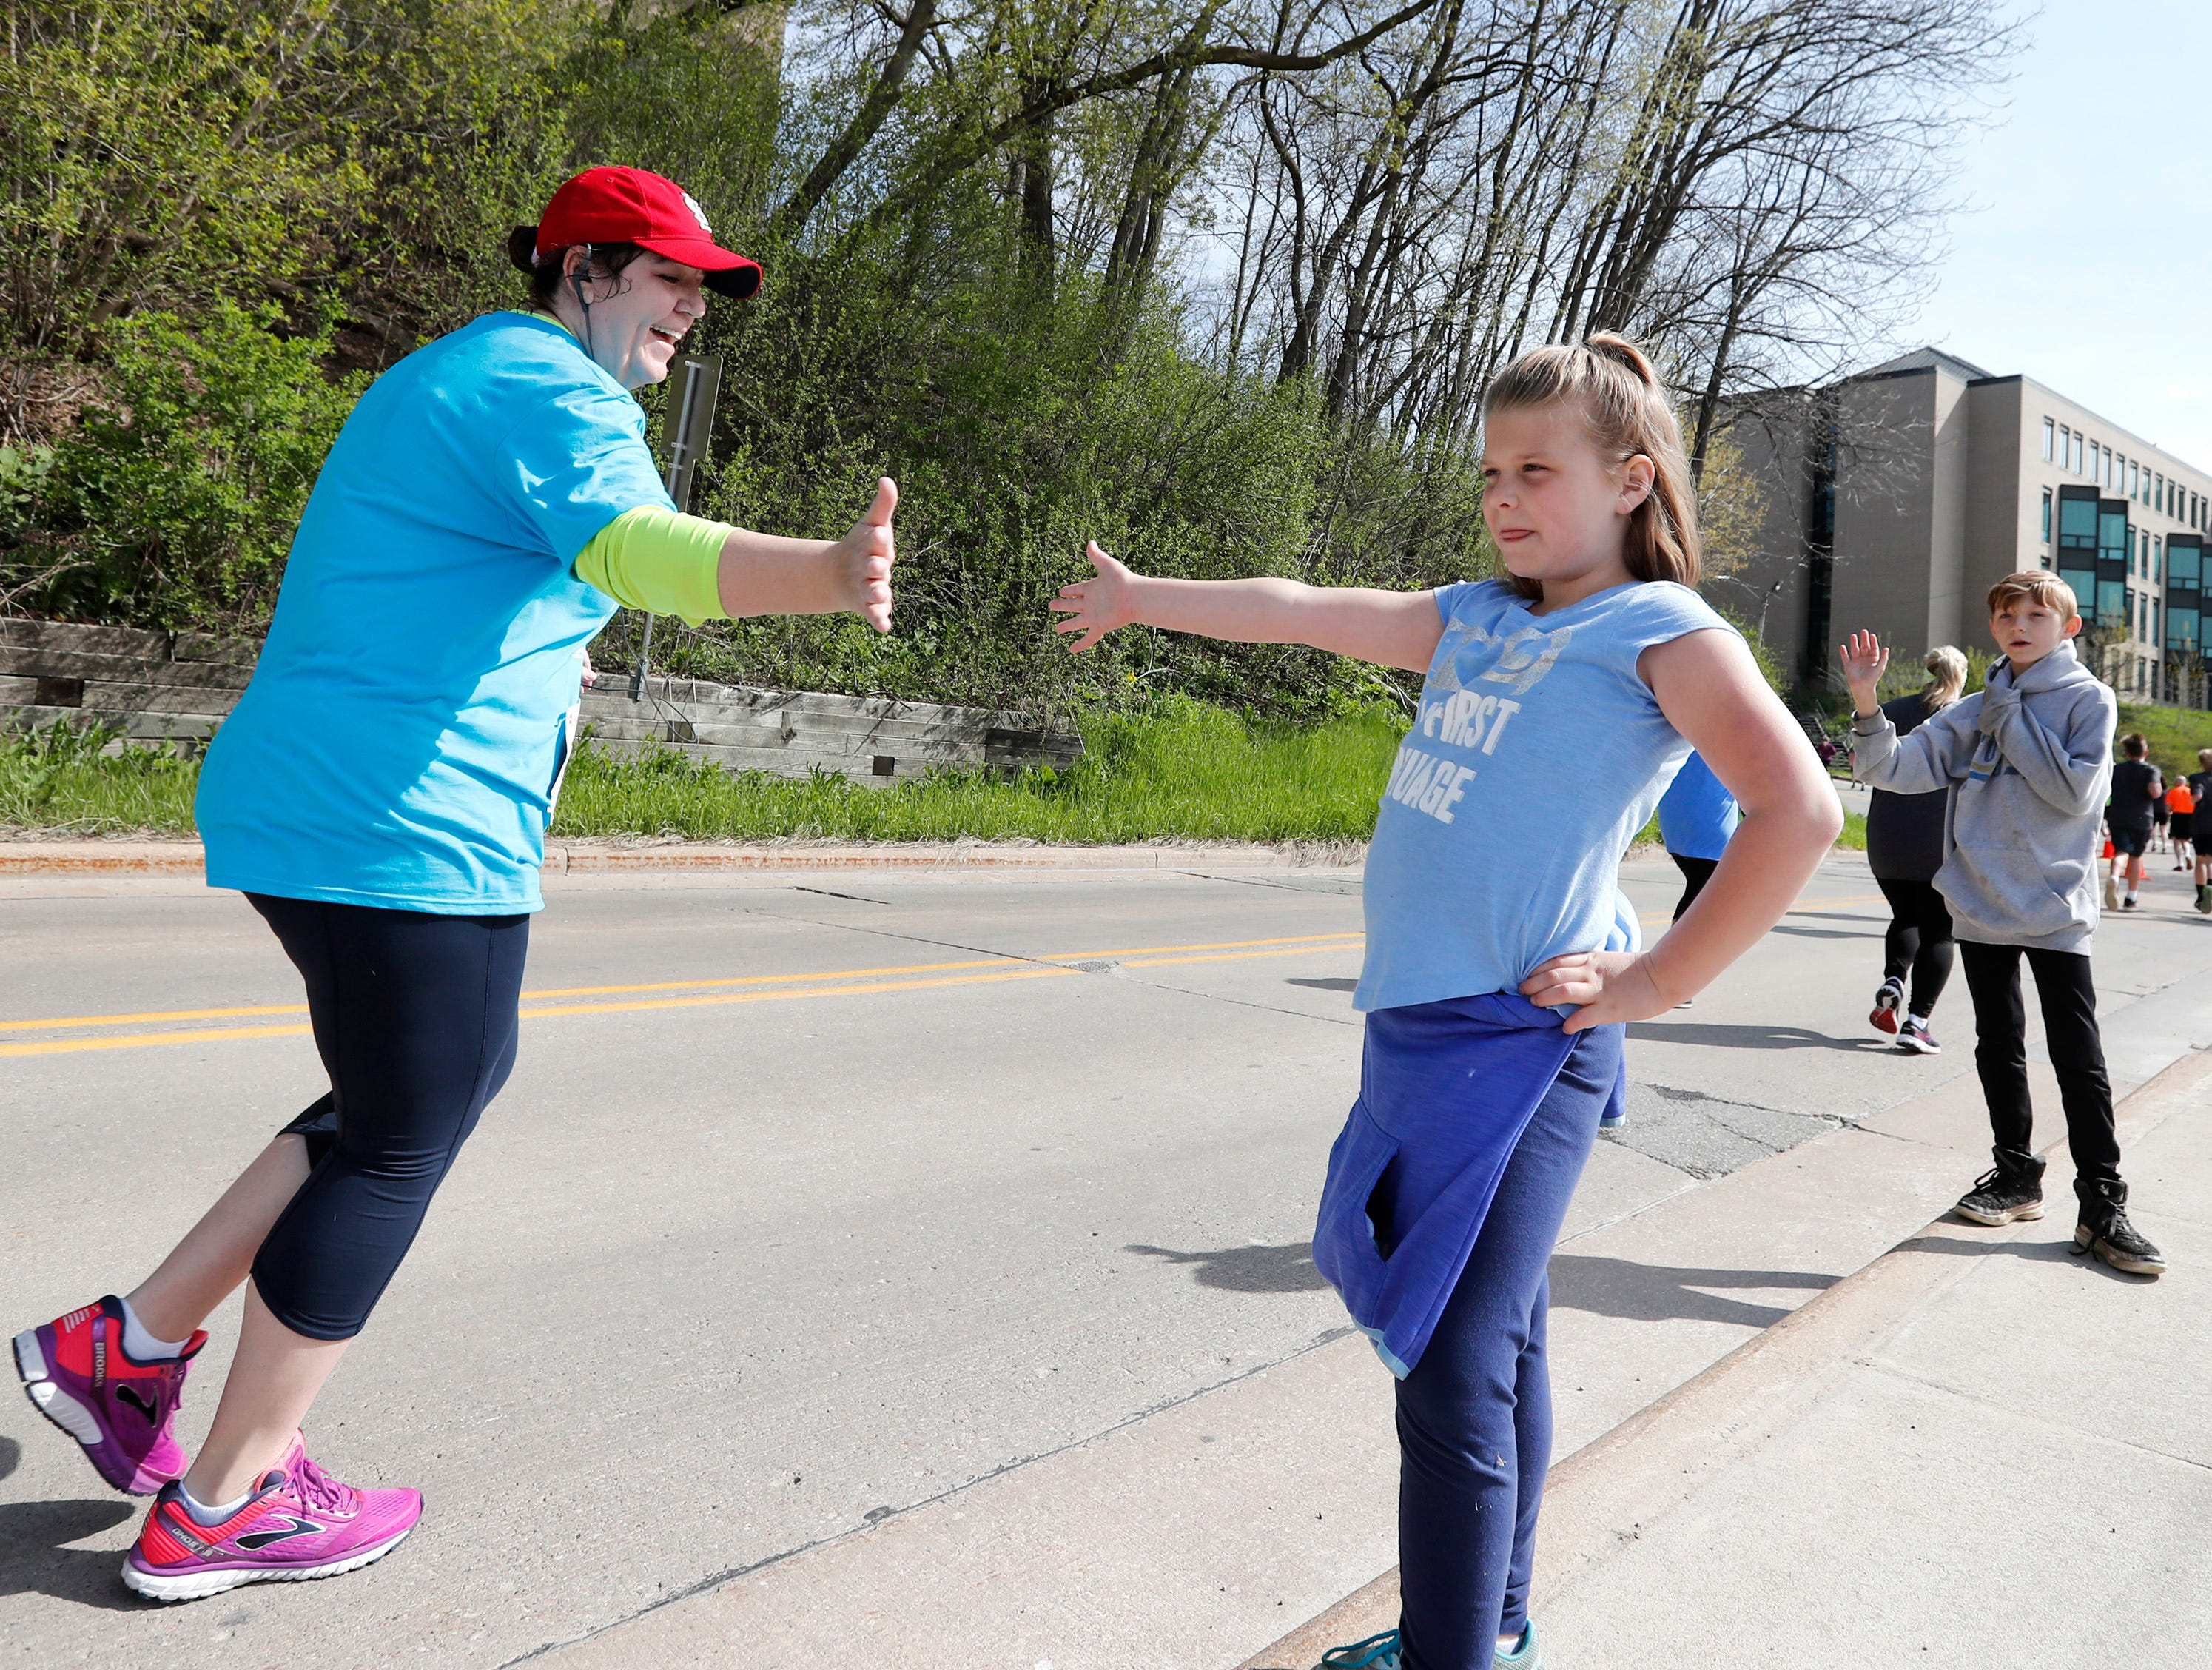 Mikayla Holschbach, 8, and her brother Malachi high five runners while waiting for their mother during the Sole Burner 5K Walk-Run Saturday, May 11, 2019, in Appleton, Wis. Danny Damiani/USA TODAY NETWORK-Wisconsin